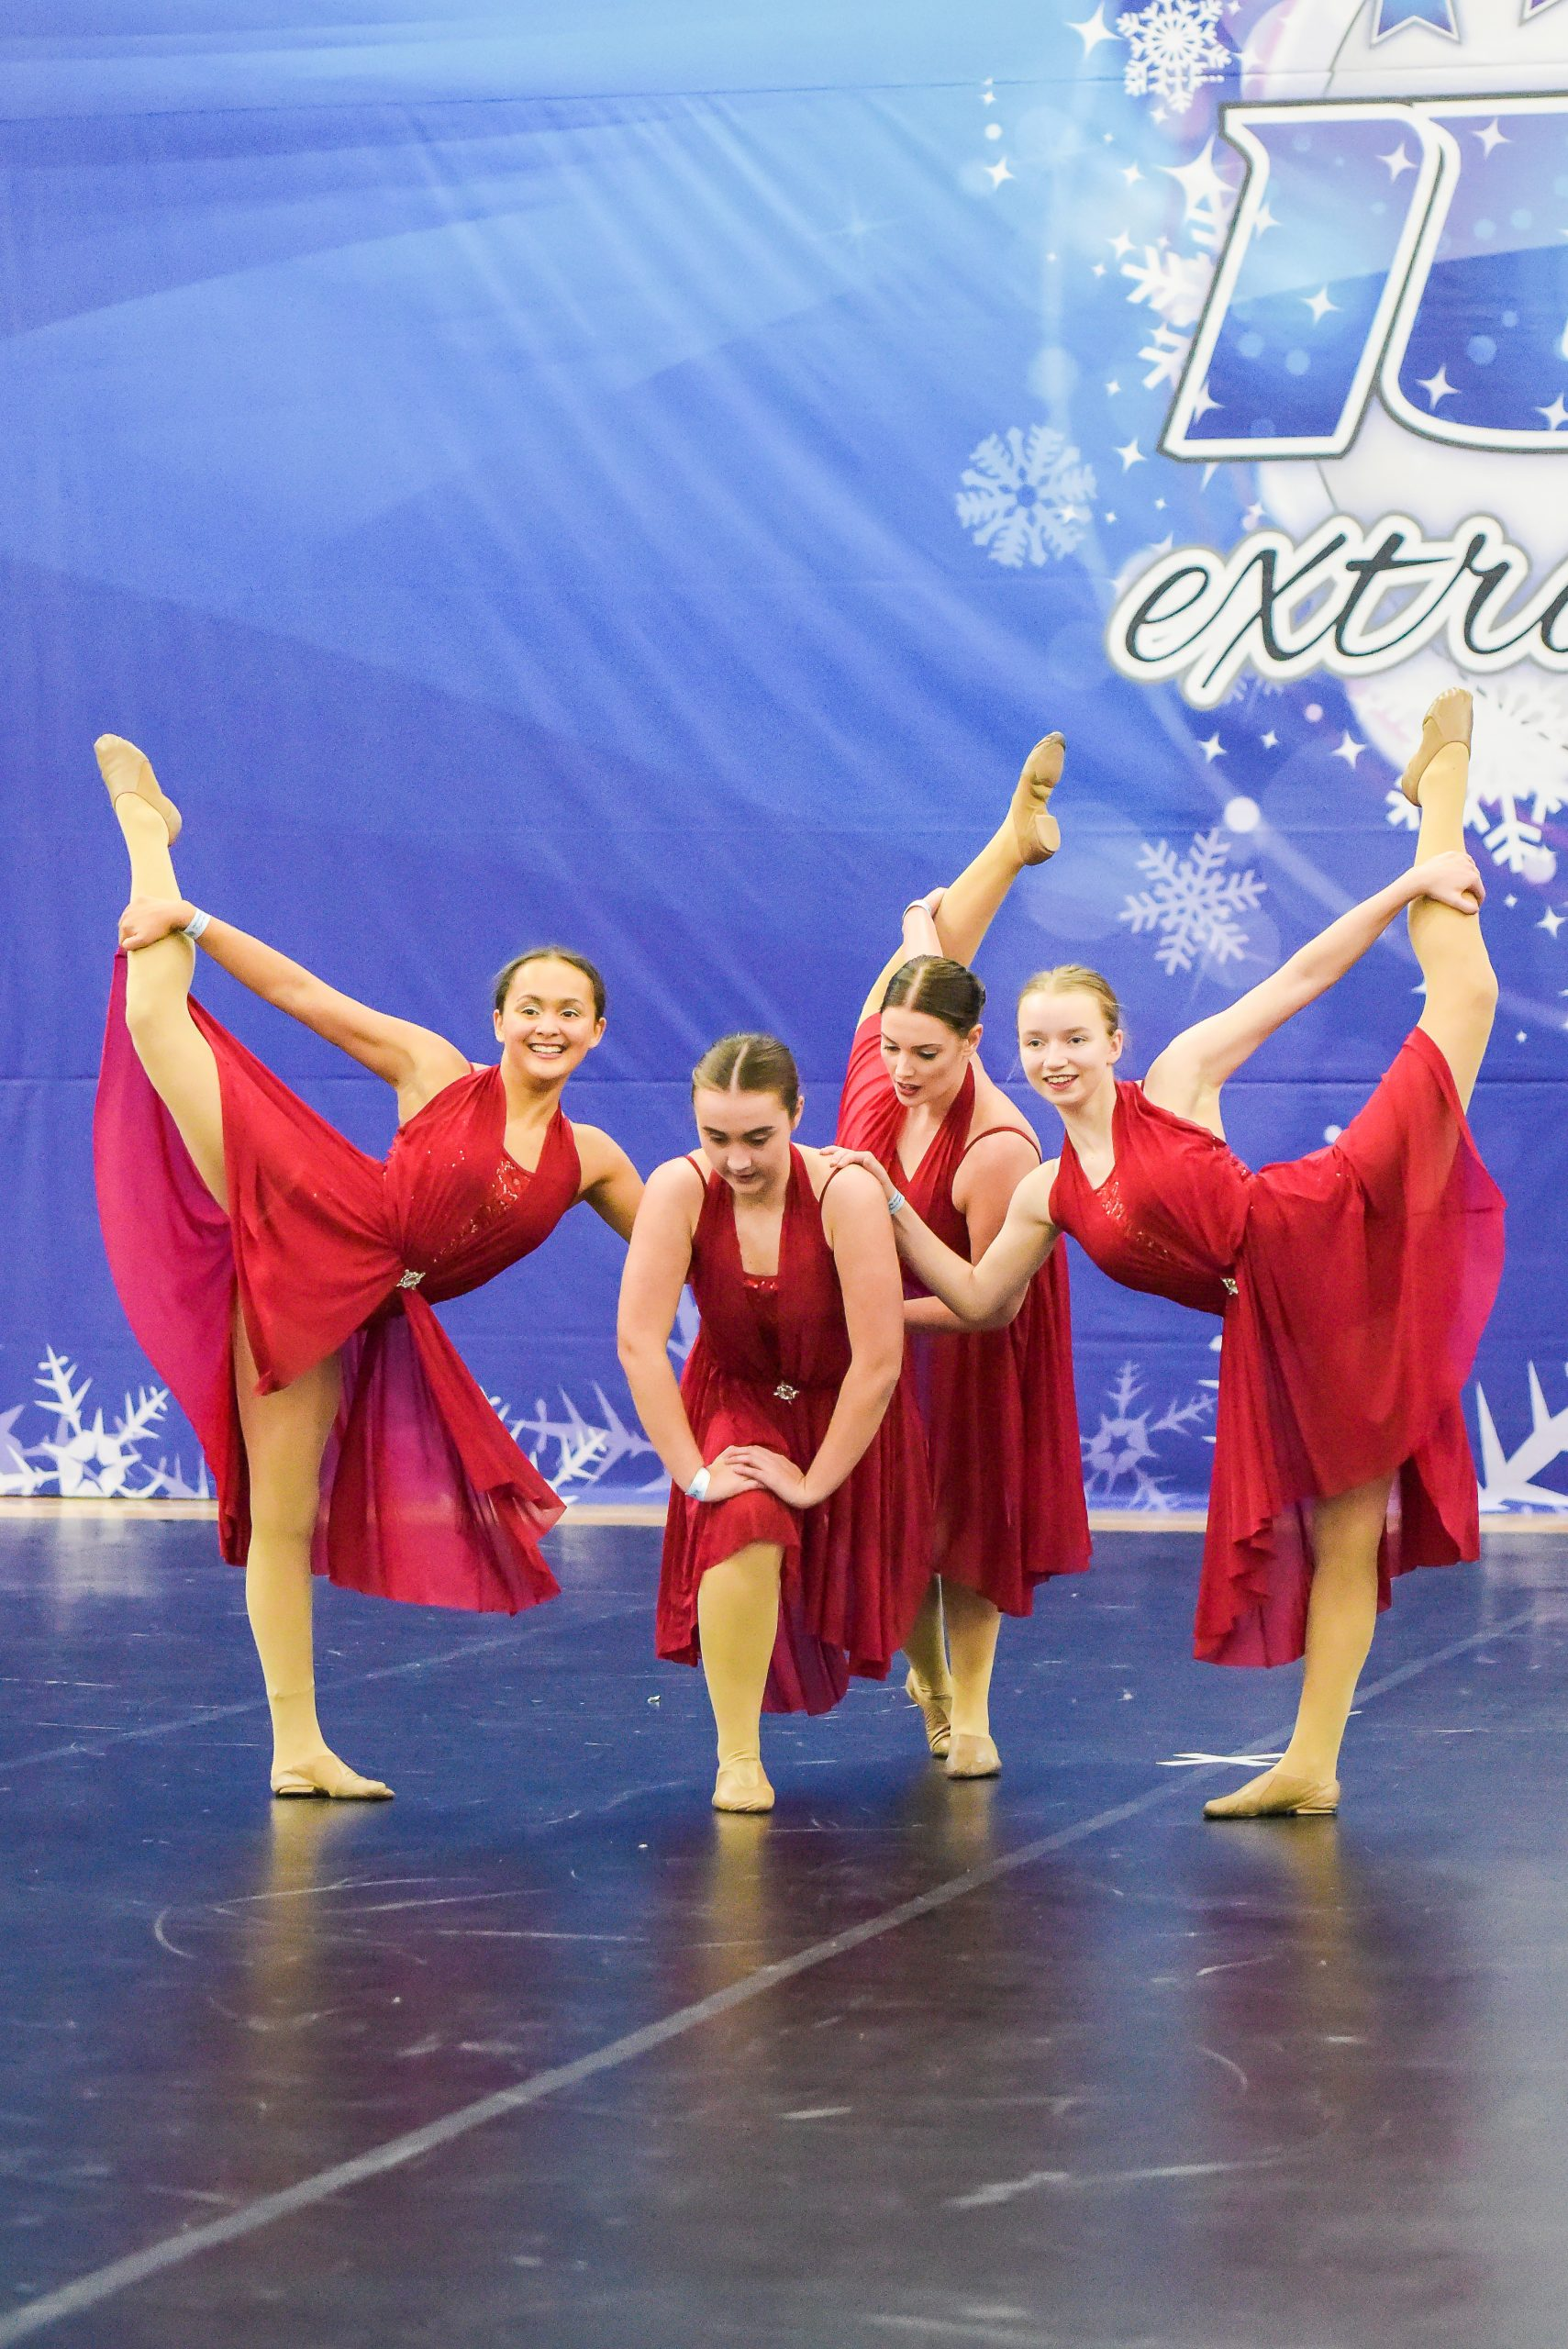 A dance team of four dancers wearing dresses compete at an ICE competition